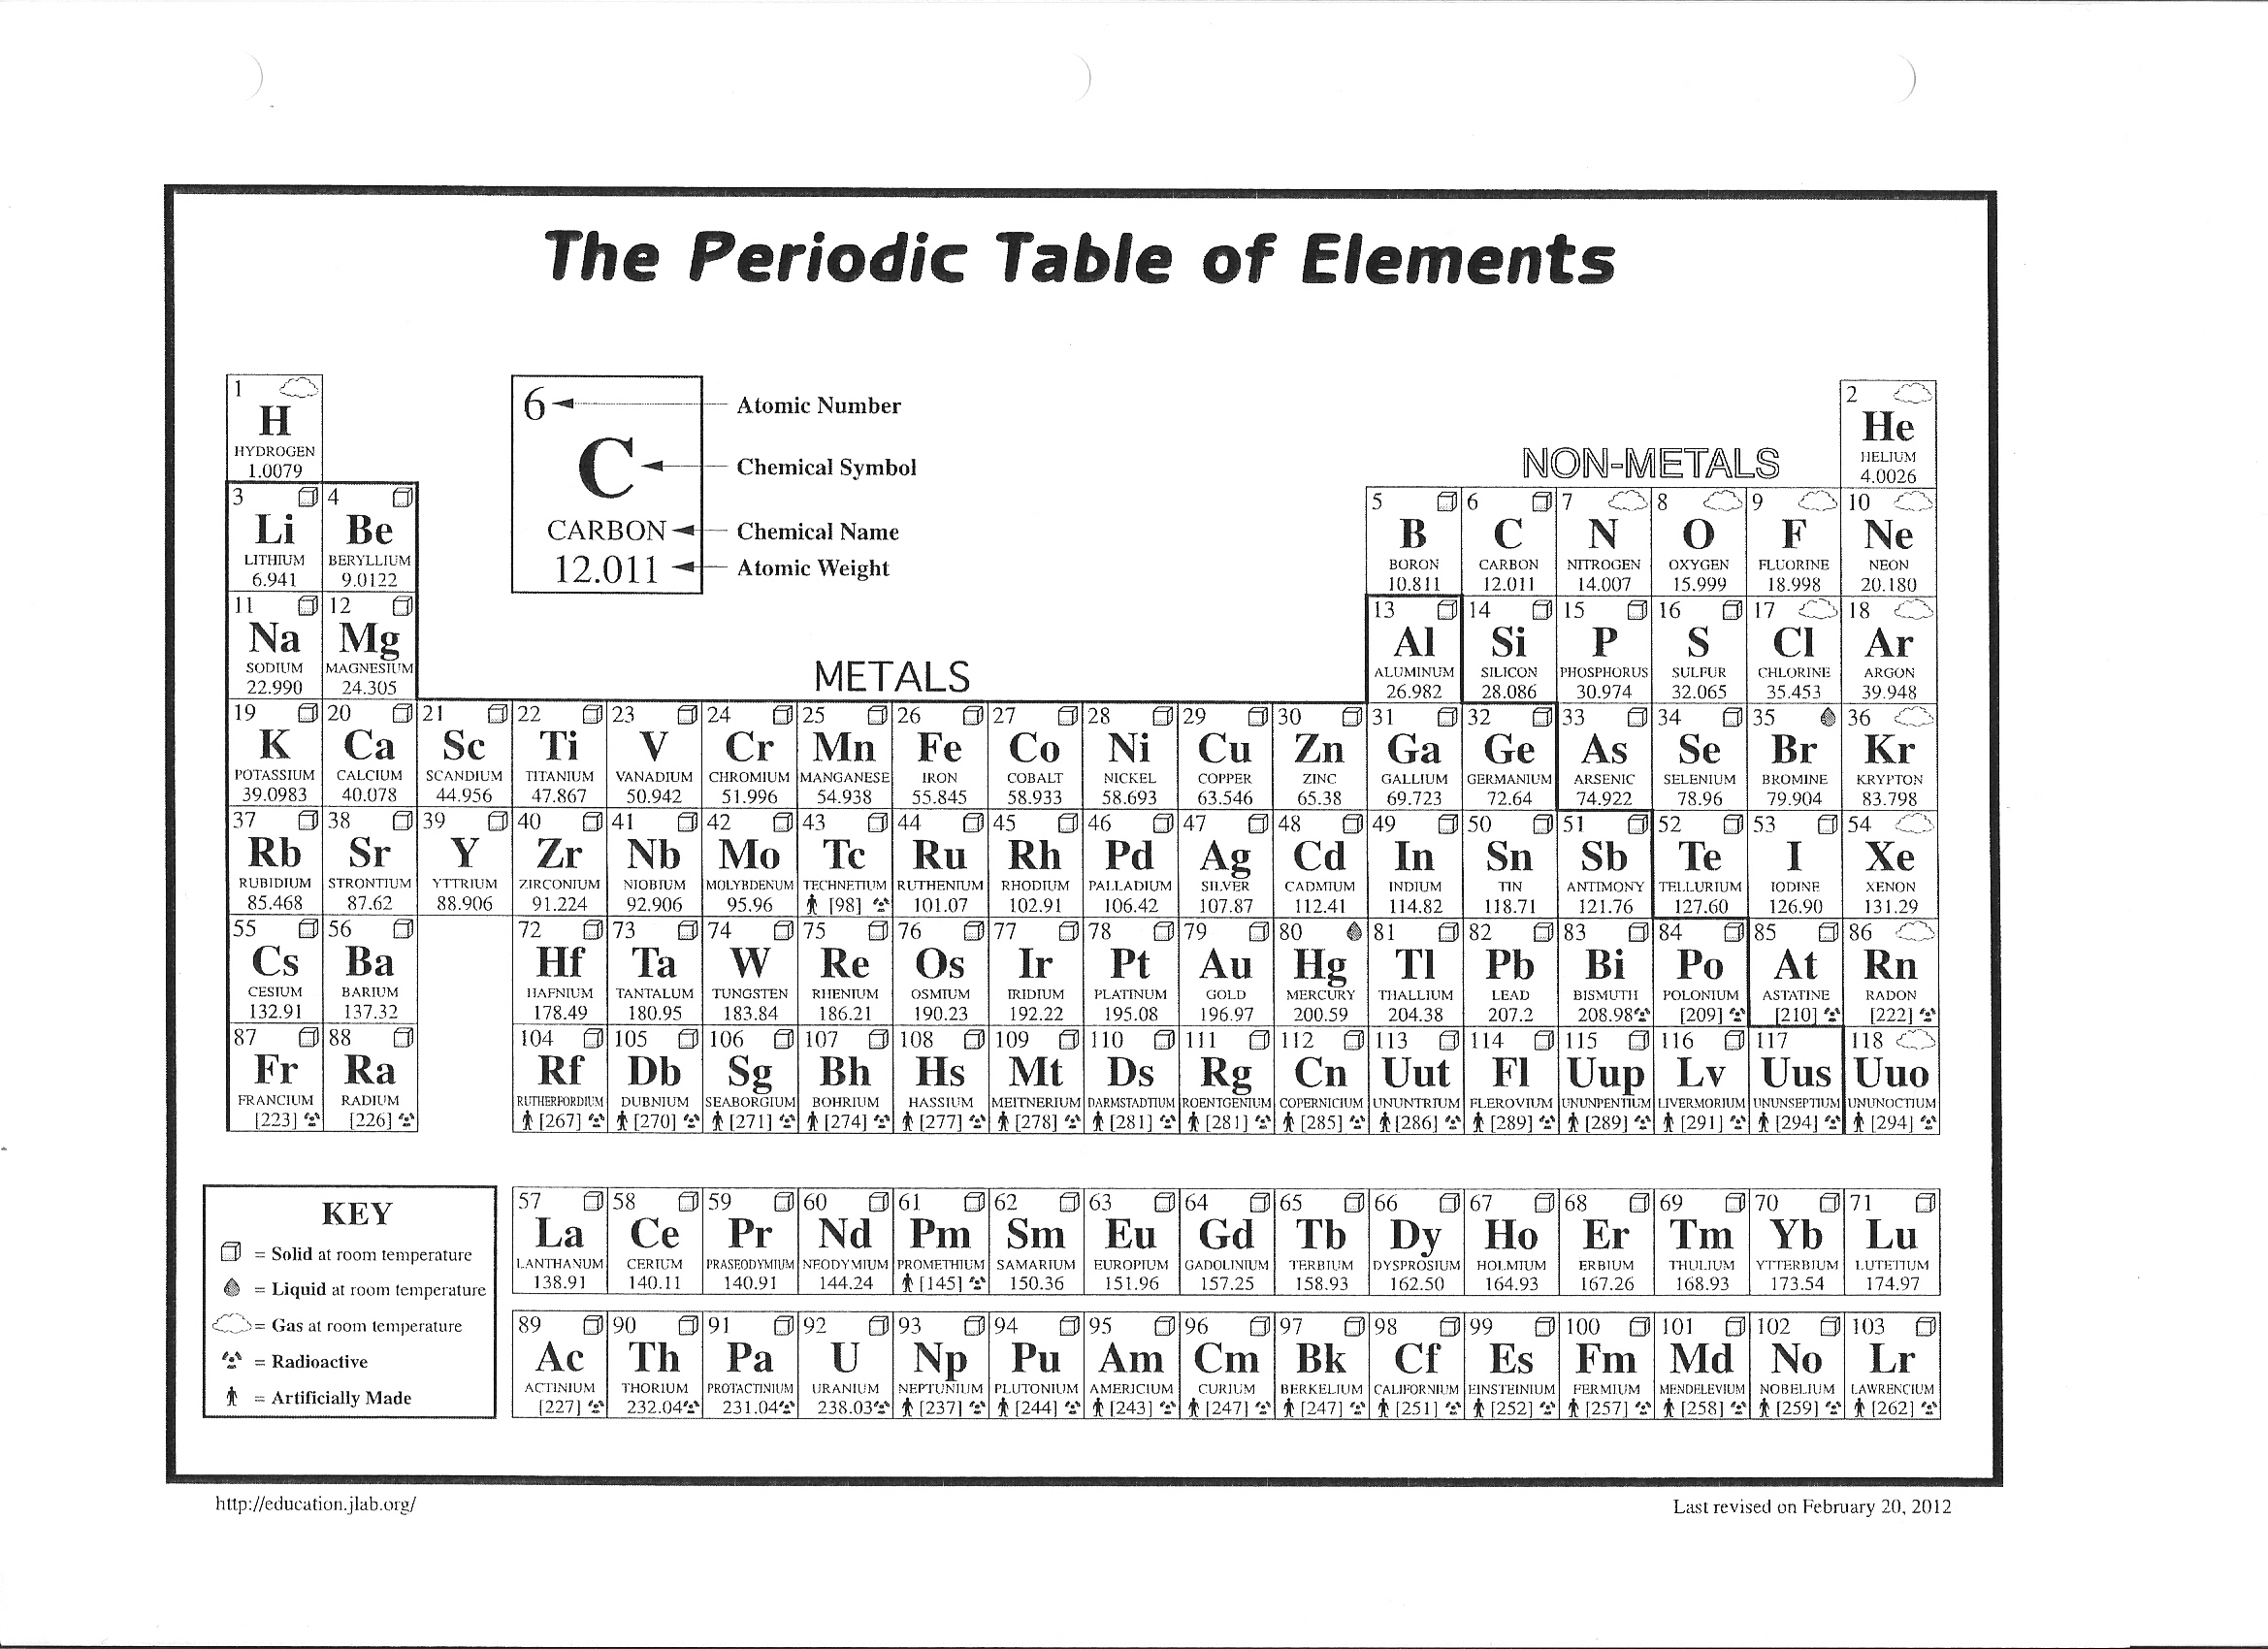 Periodic tables of the elements in american englishmichael canov amer9g urtaz Images